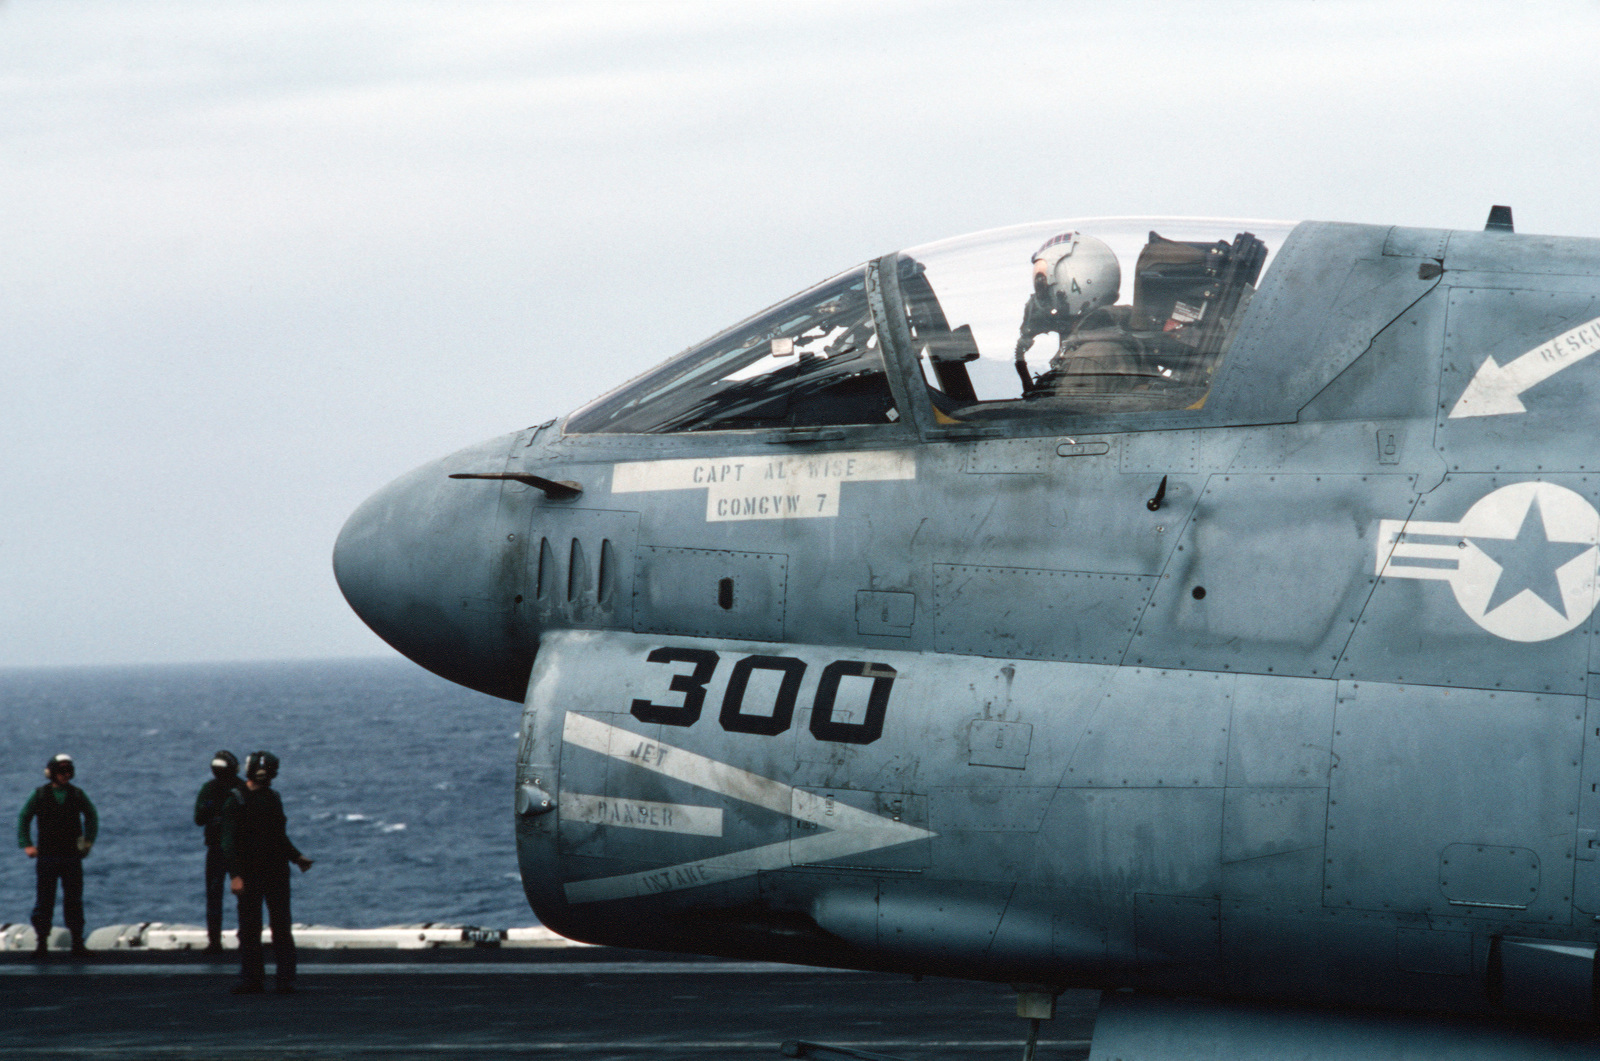 A left side view of the cockpit of an A-7 Corsair II as the aircraft is prepared for takeoff from the nuclear-powered aircraft carrier USS DWIGHT D. EISENHOWER (CVN 69)